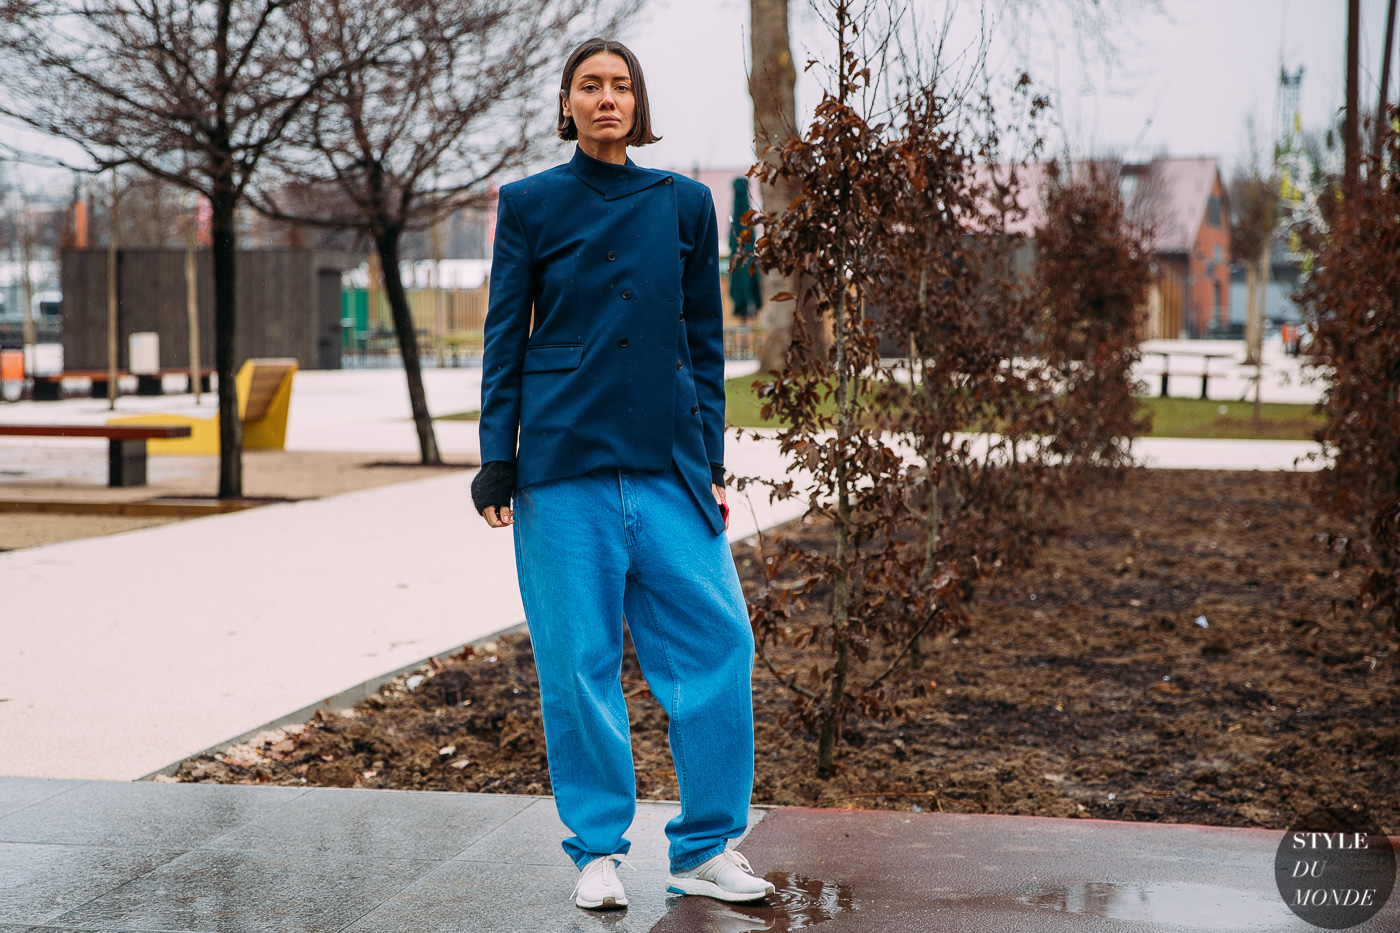 Julie Pelipas by STYLEDUMONDE Street Style Fashion Photography FW18 20180304_48A2742